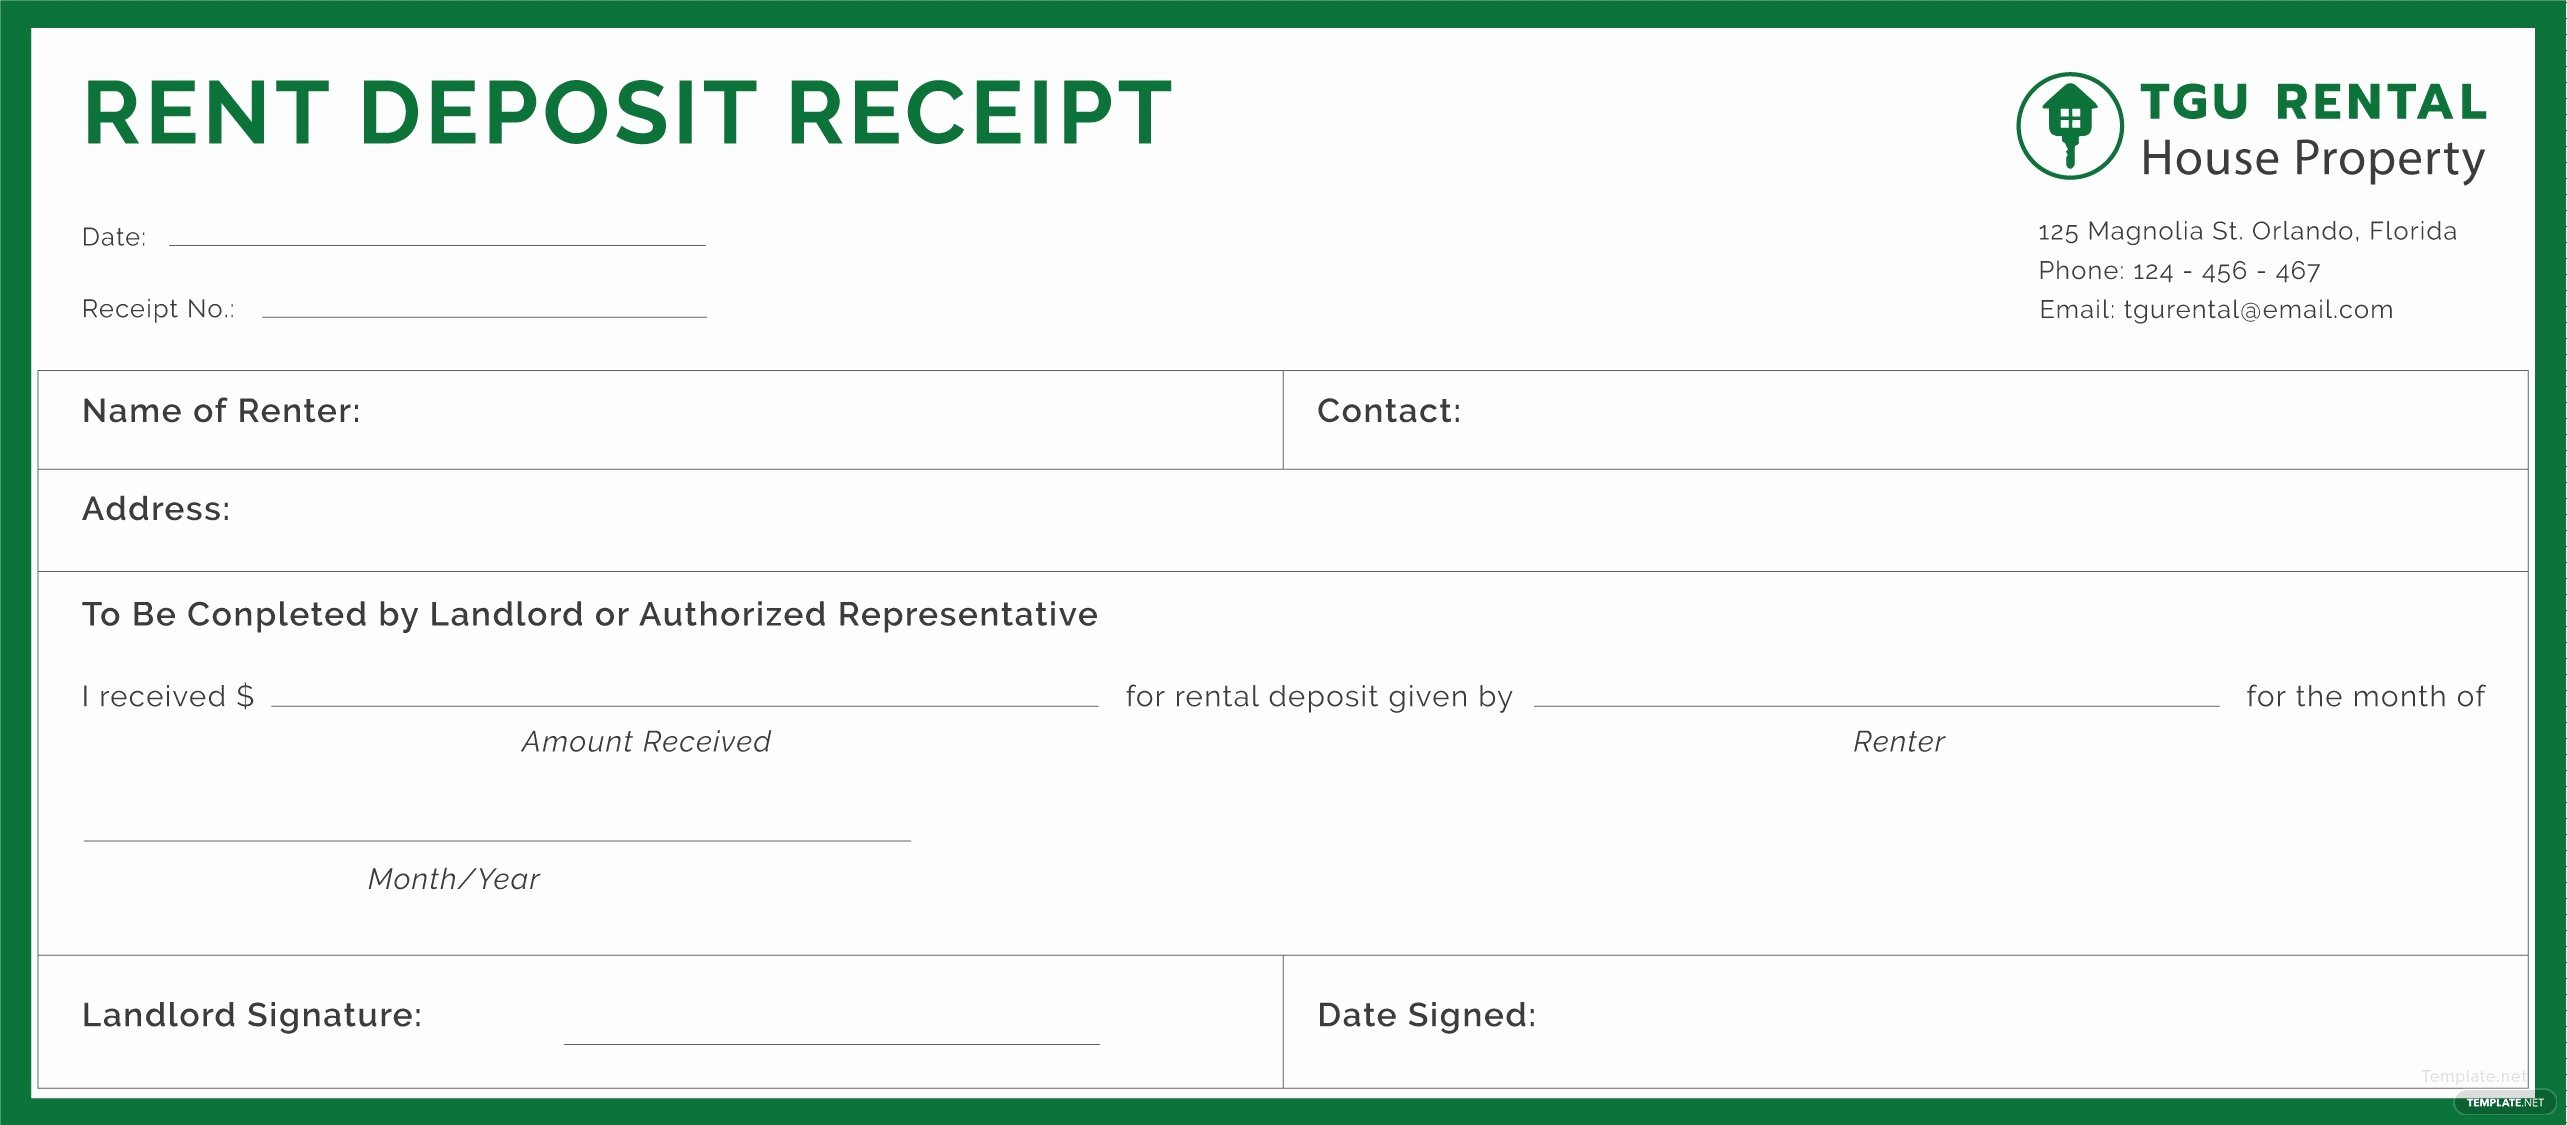 Rental Deposit Receipt Template Best Of Free Rent Deposit Receipt Template In Adobe Illustrator